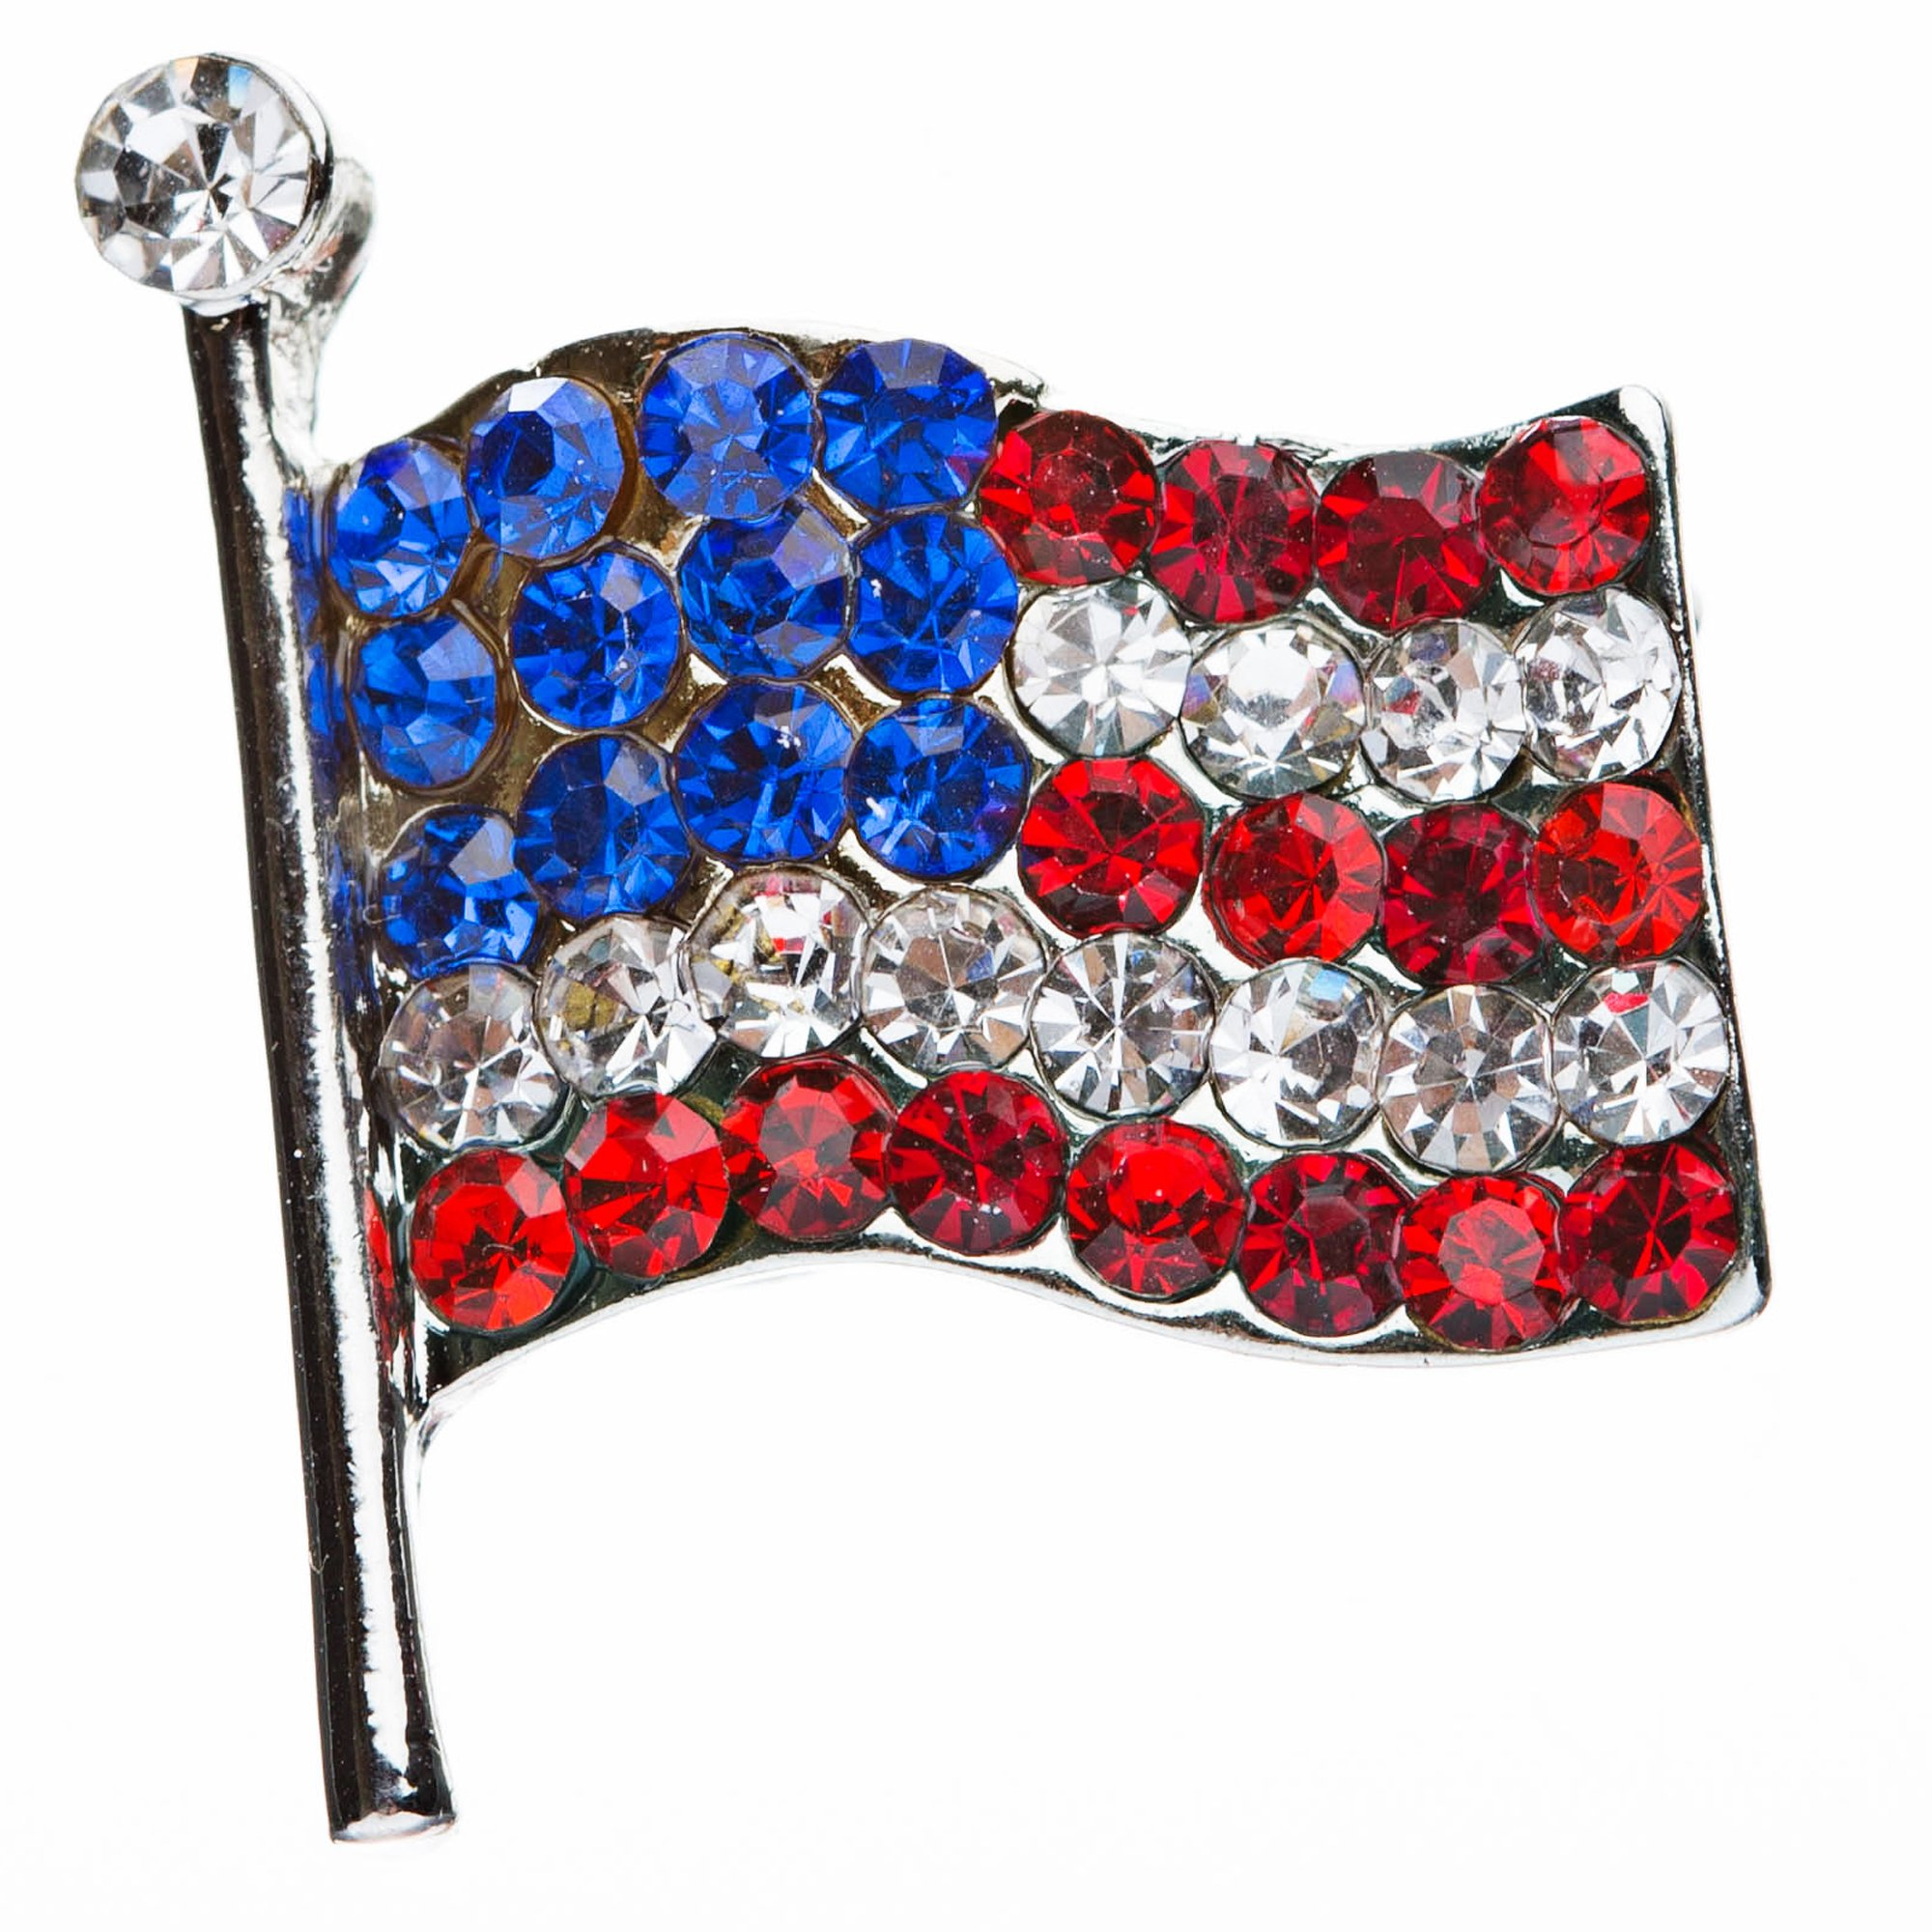 ACCESSORIESFOREVER Patriotic Jewelry American Flag Crystal Rhinestone Brooch Pin BH56 Silver by Accessoriesforever (Image #1)